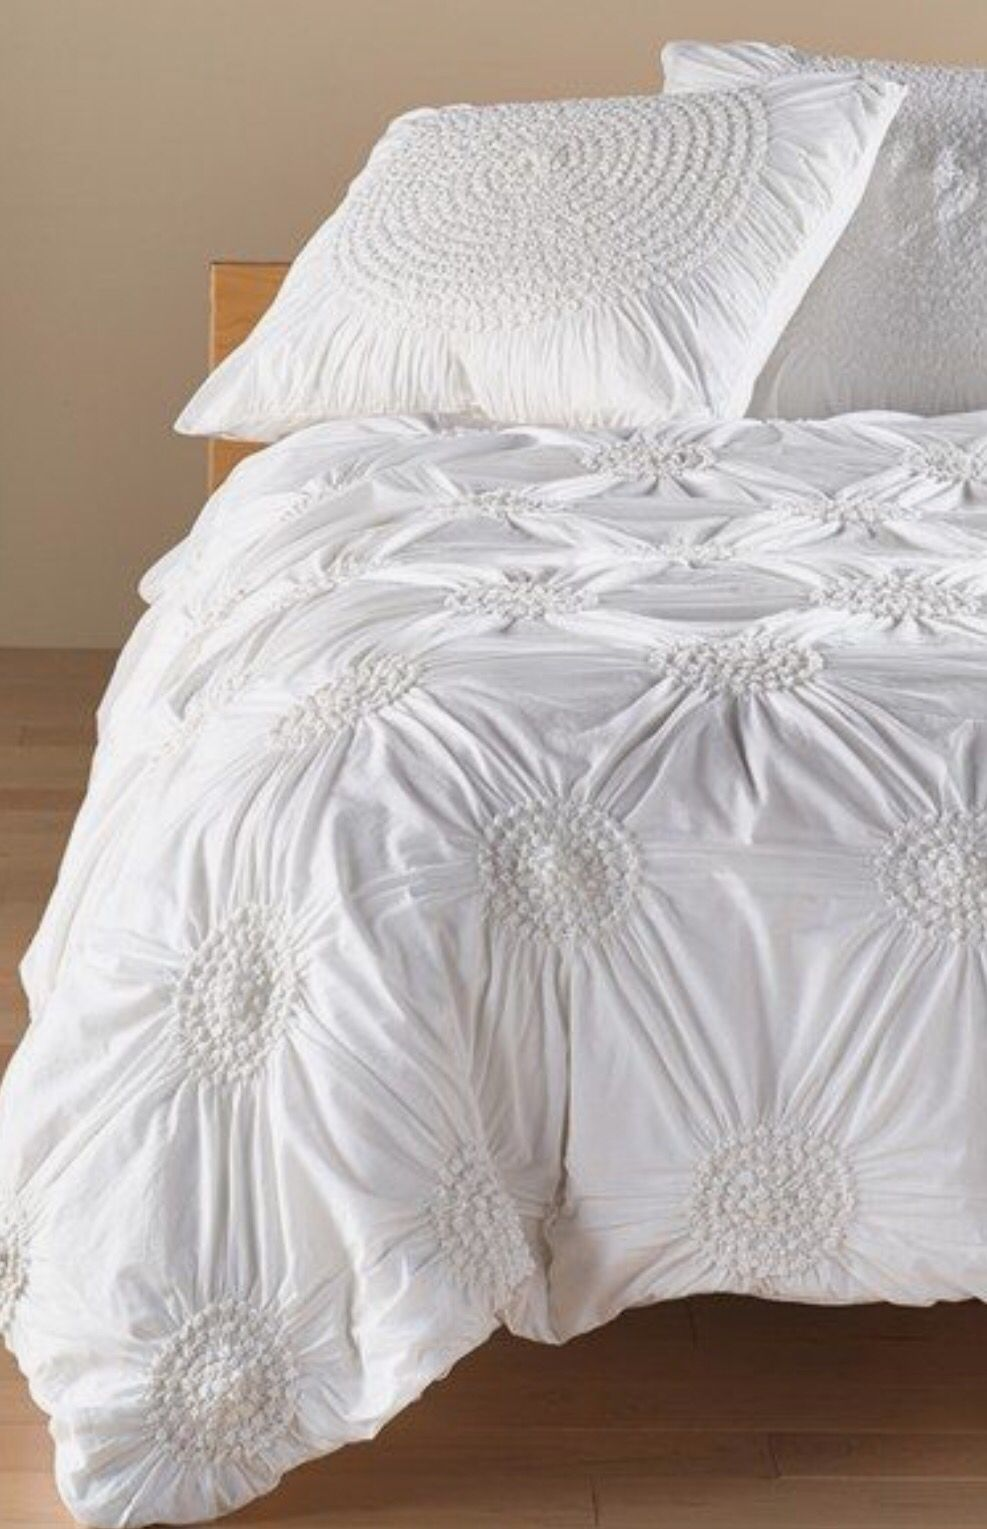 Nordstrom Topshop True Down Comforter With Images Shabby Chic Duvet Cover Chic Duvet Covers White Duvet Covers